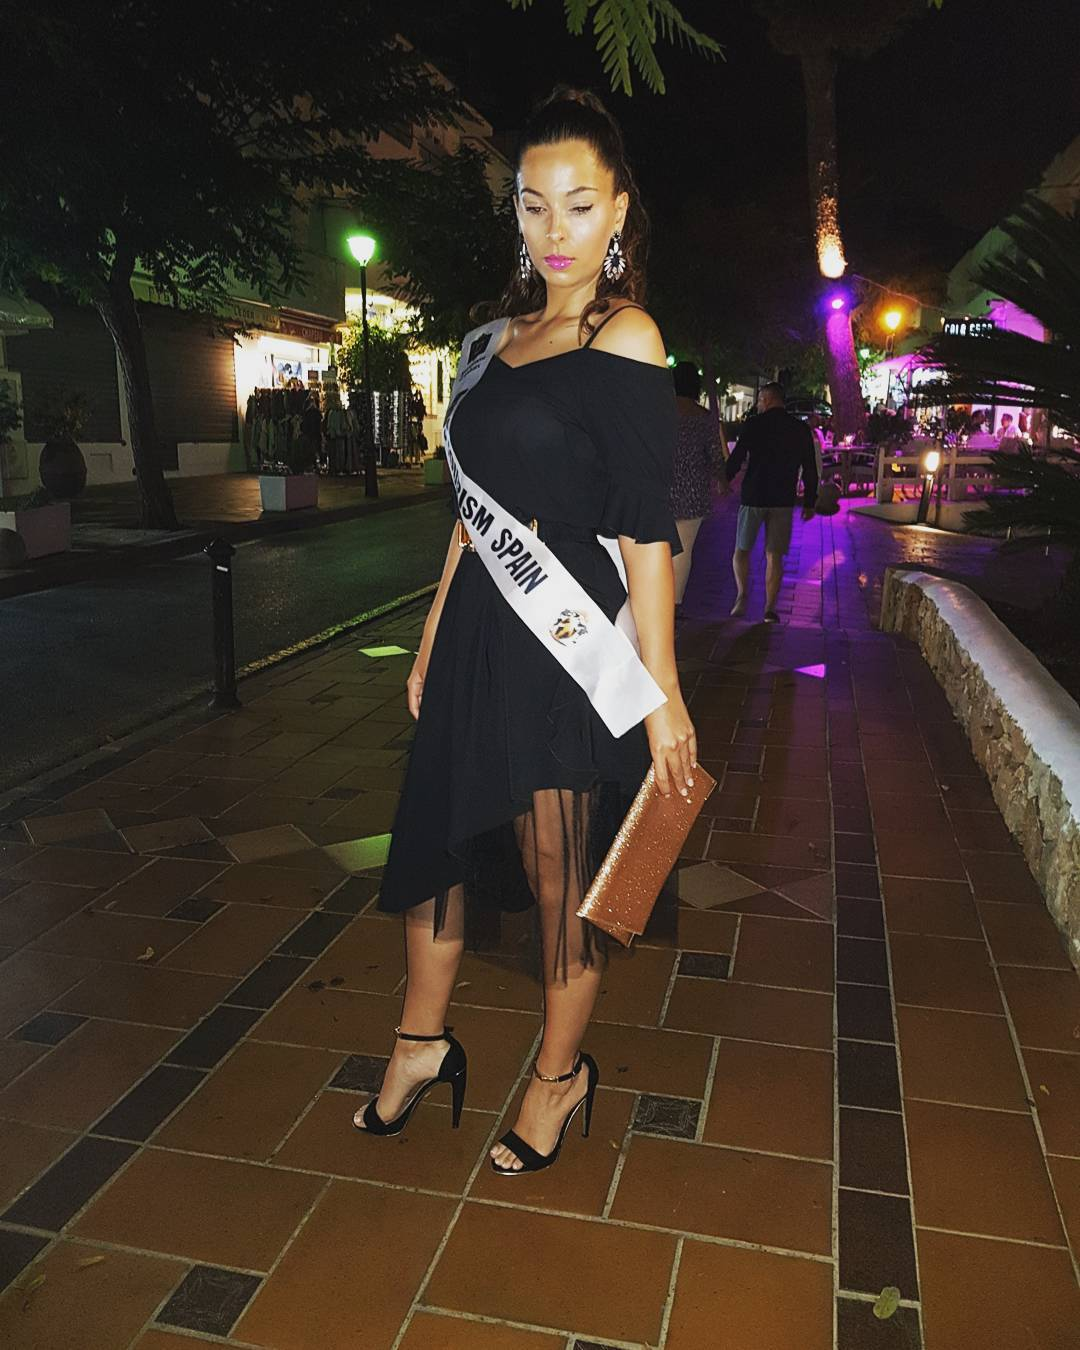 rafaella candida, top 15 de miss tourism 2017/2018. 22500511